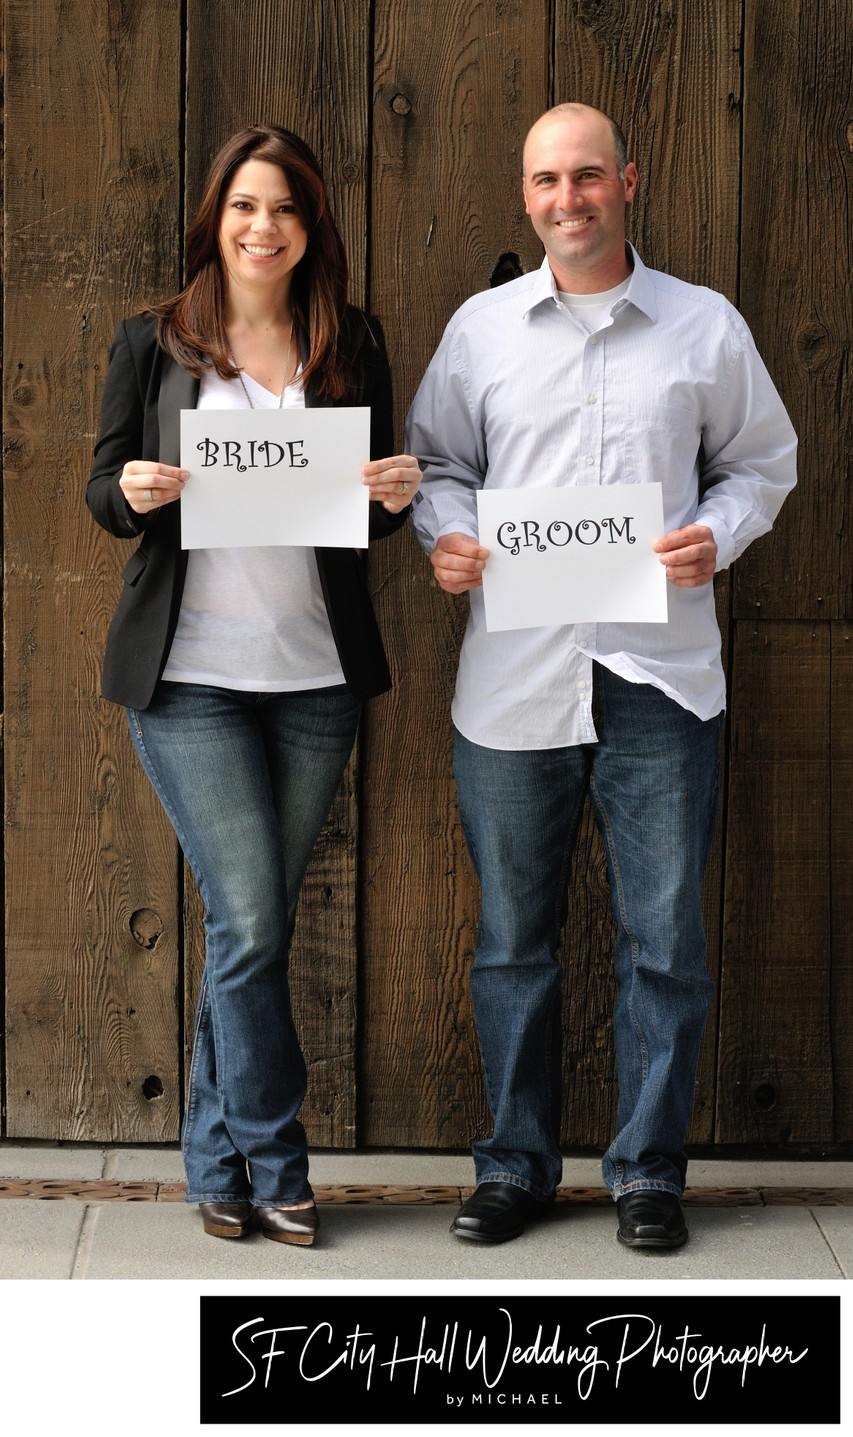 Bride and Groom Posing for Engagement Photography Session